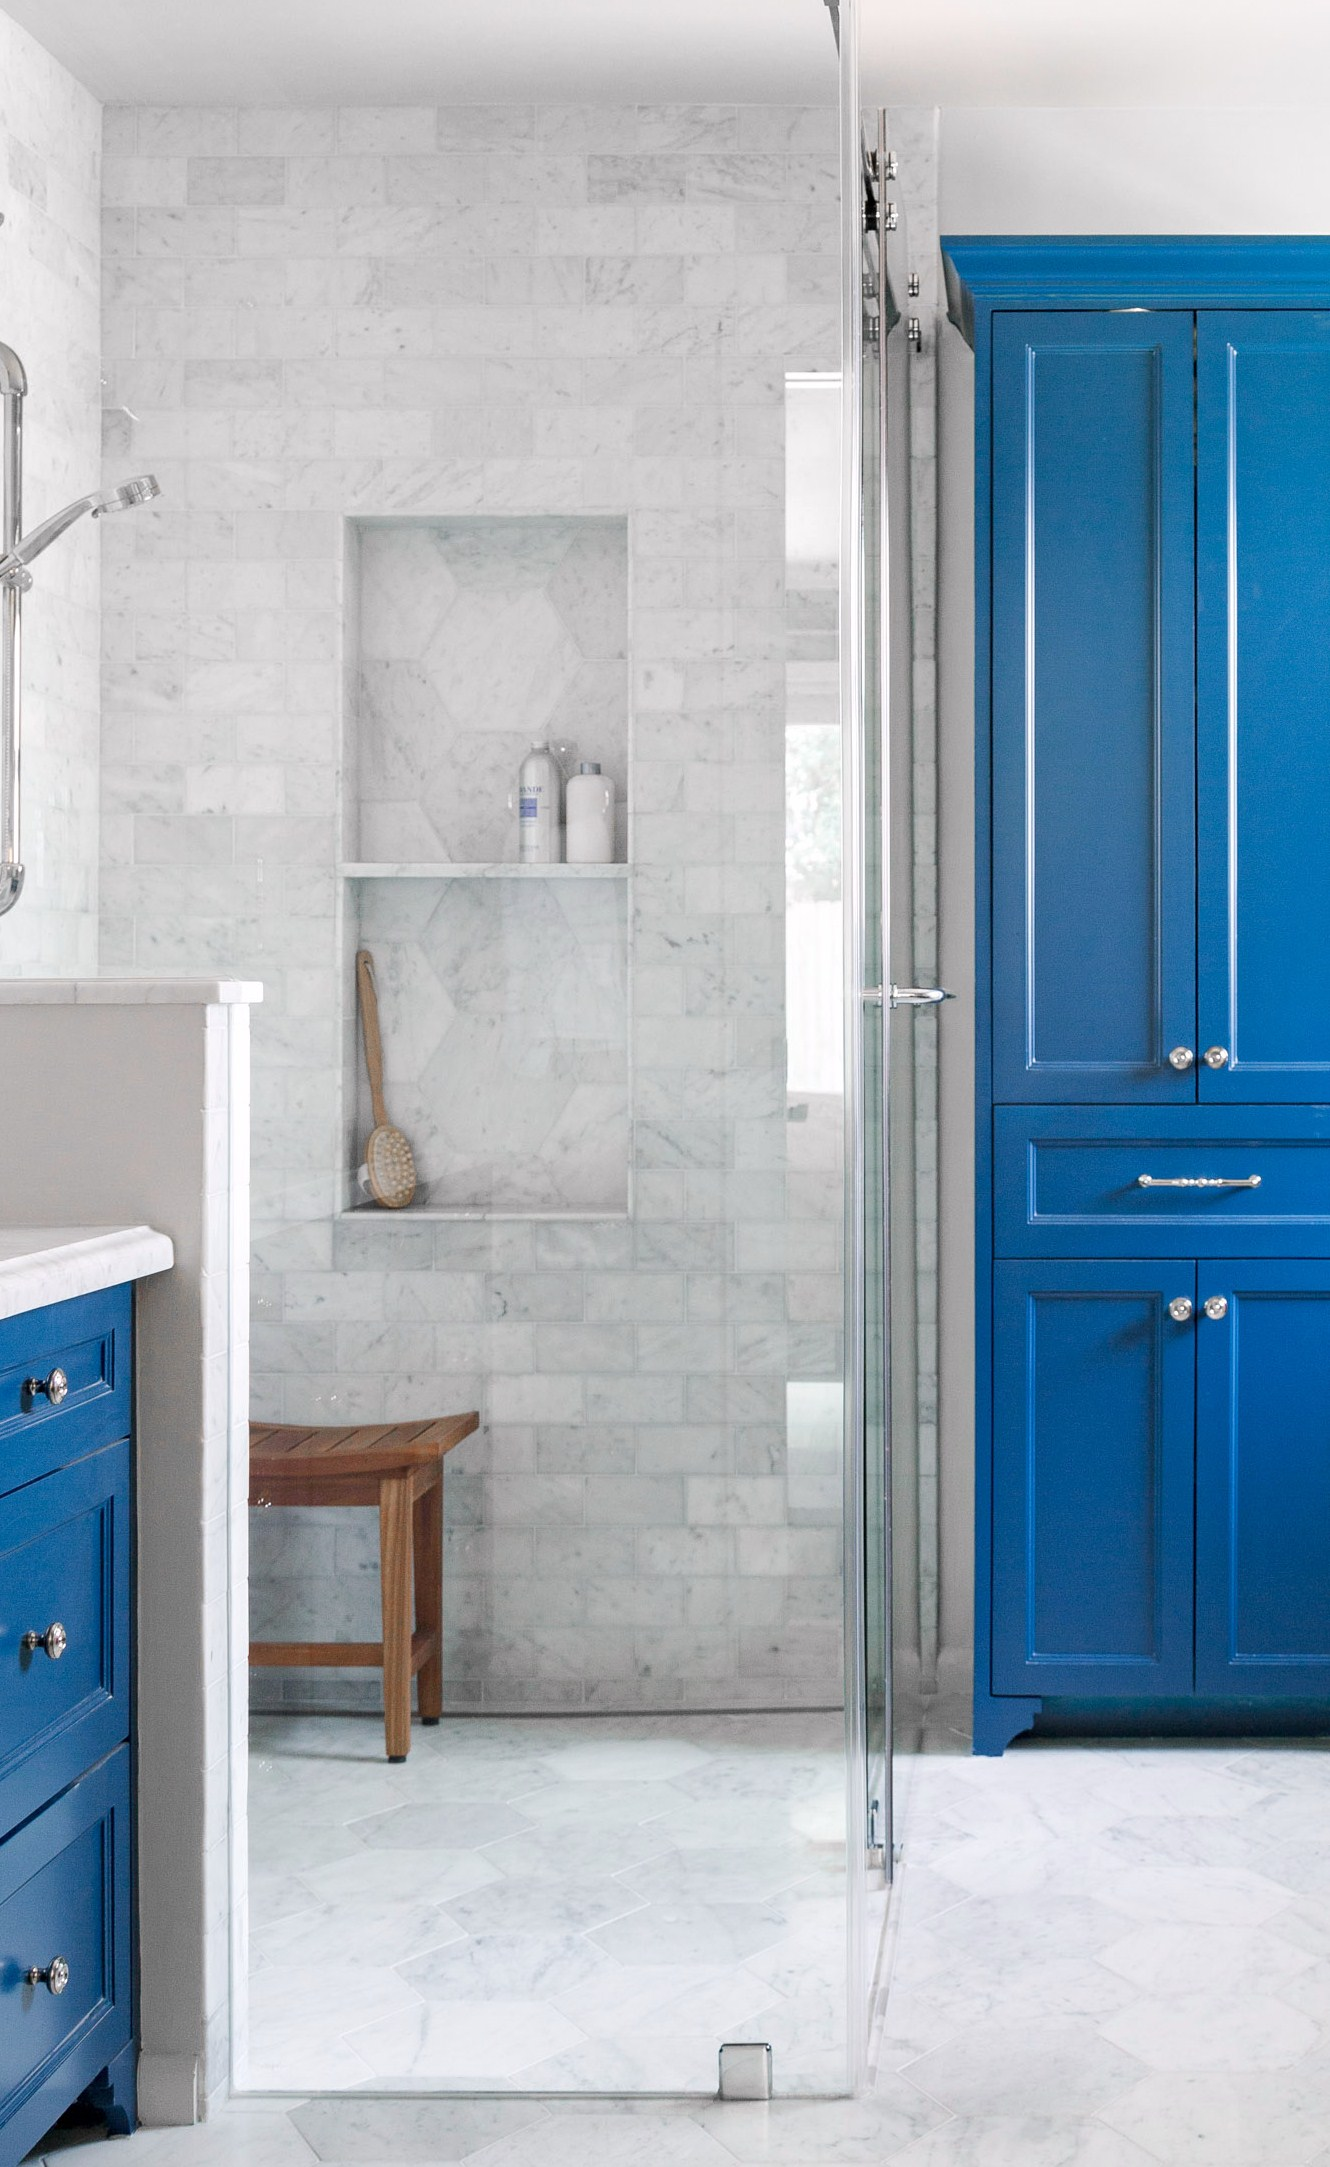 SEE THE FULL REMODEL:    Before and After: A Boutique Hotel Inspired Master Bath Remodel   | Photographer: Tori Aston